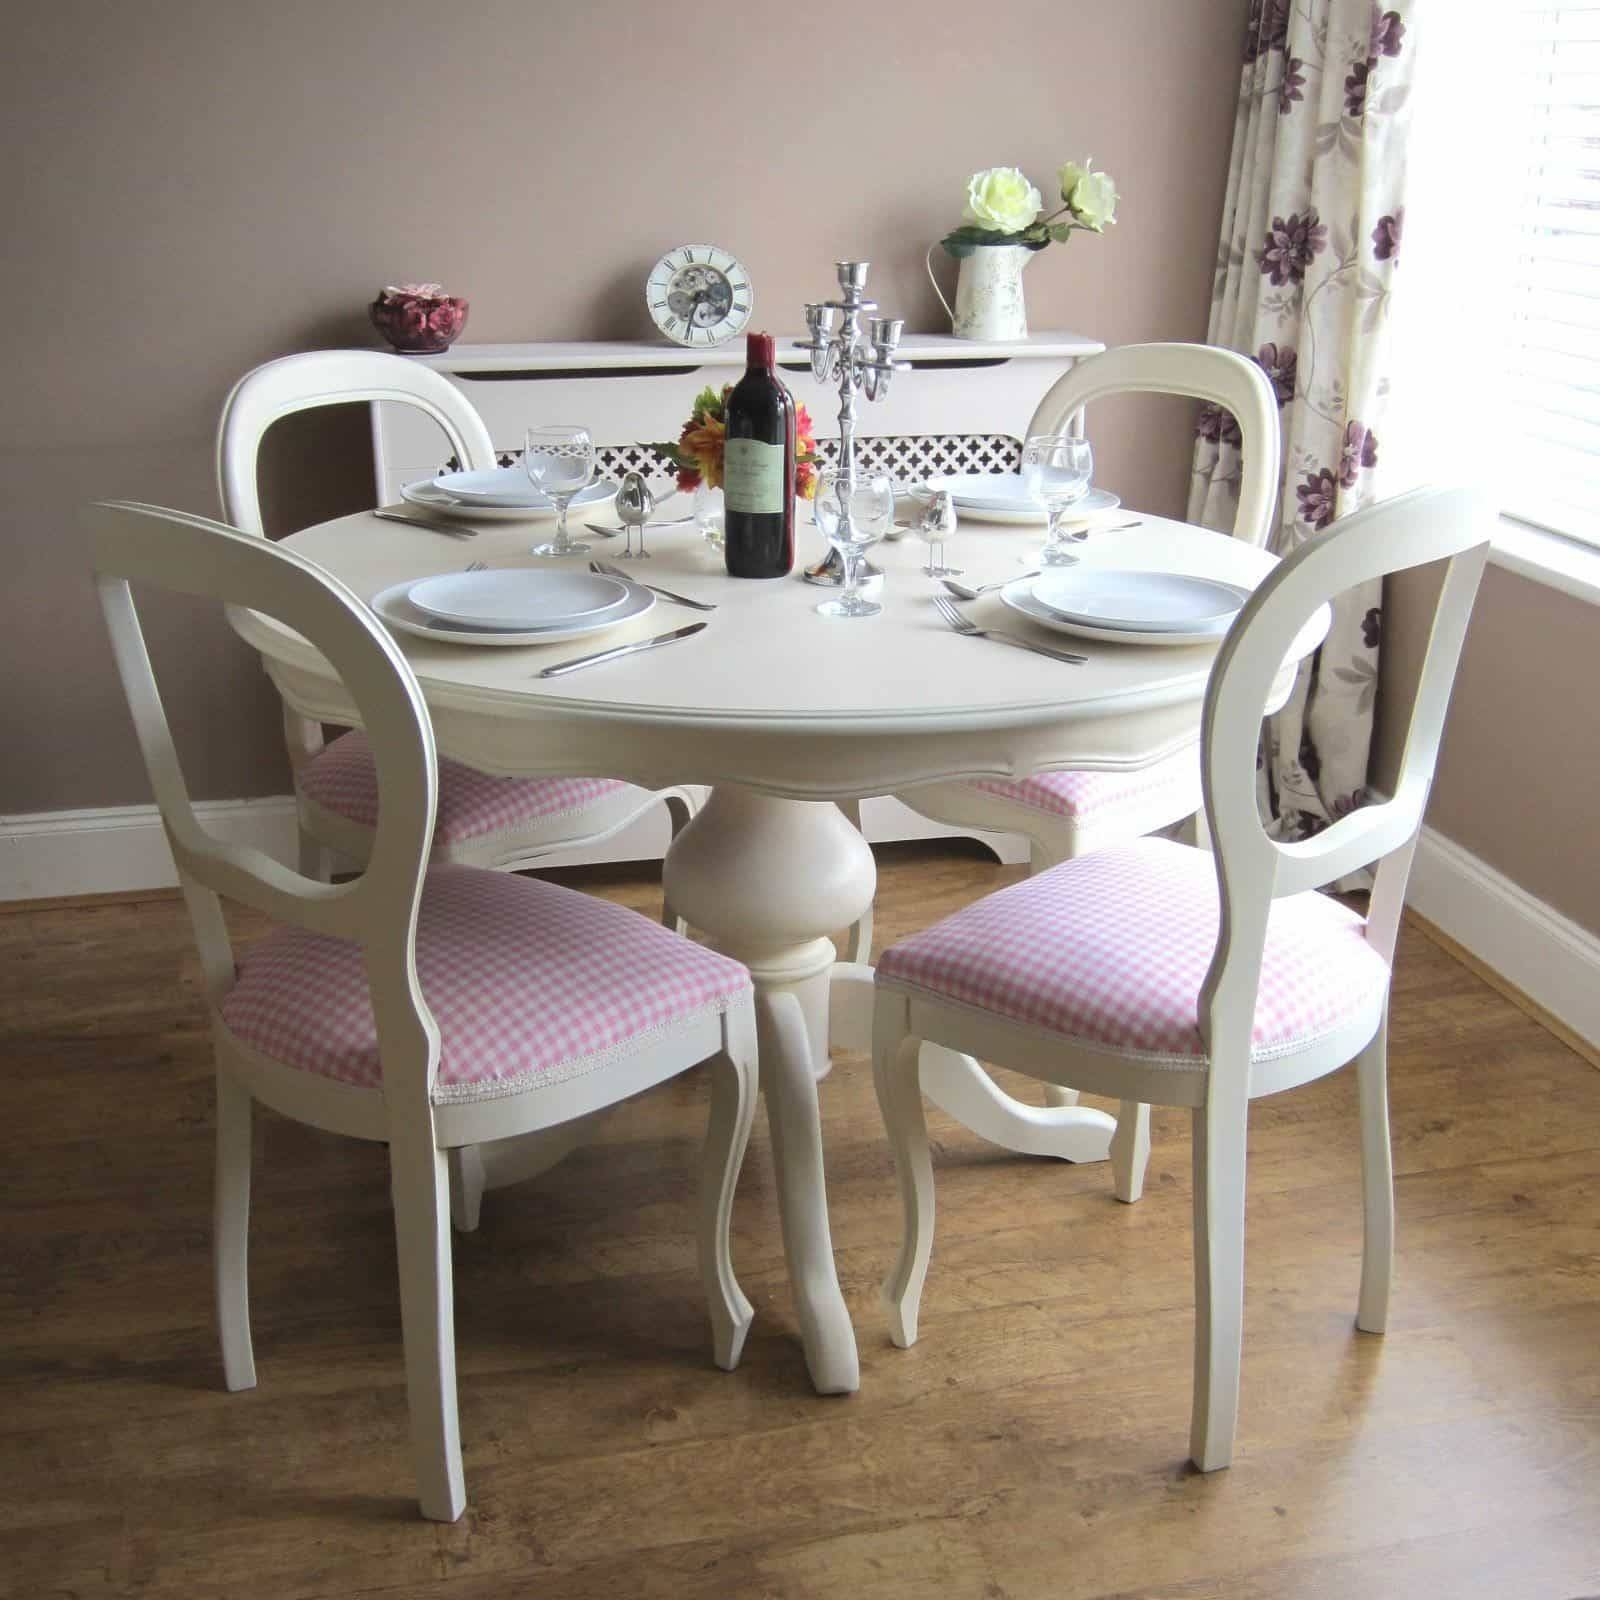 Dining Room With Shabby Chic Furniture Such As Table With Armless Inside Most Current Dining Room Table Chairs And Sideboards (#7 of 15)